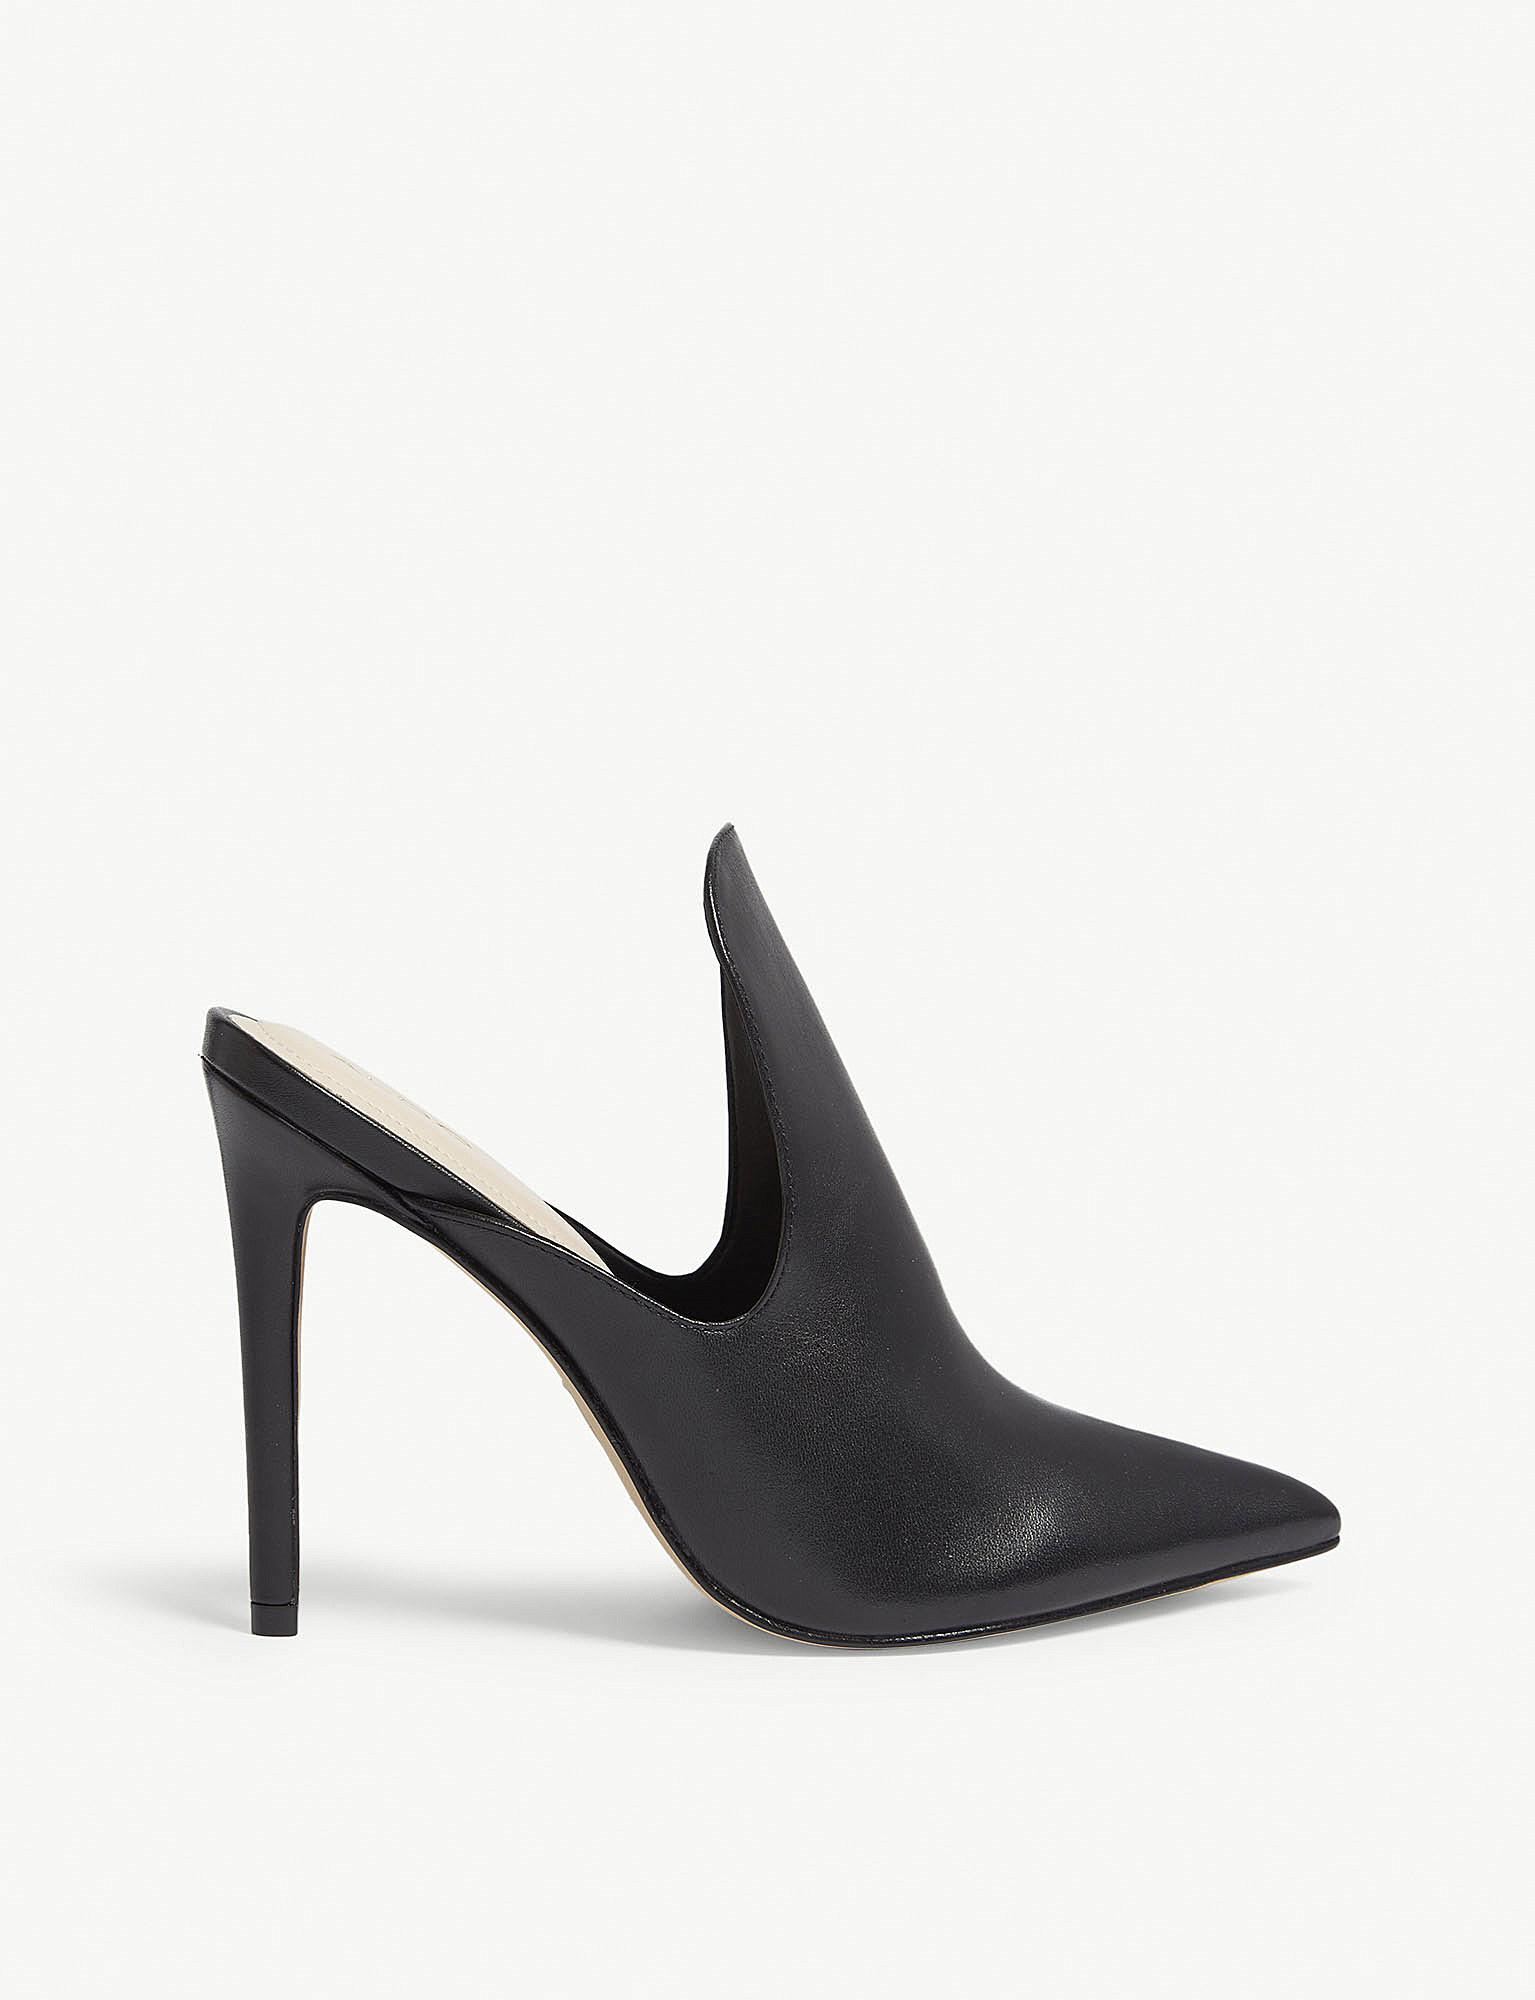 a62e4fb8d65 ALDO Tenno Heeled Leather Mules in Black - Lyst